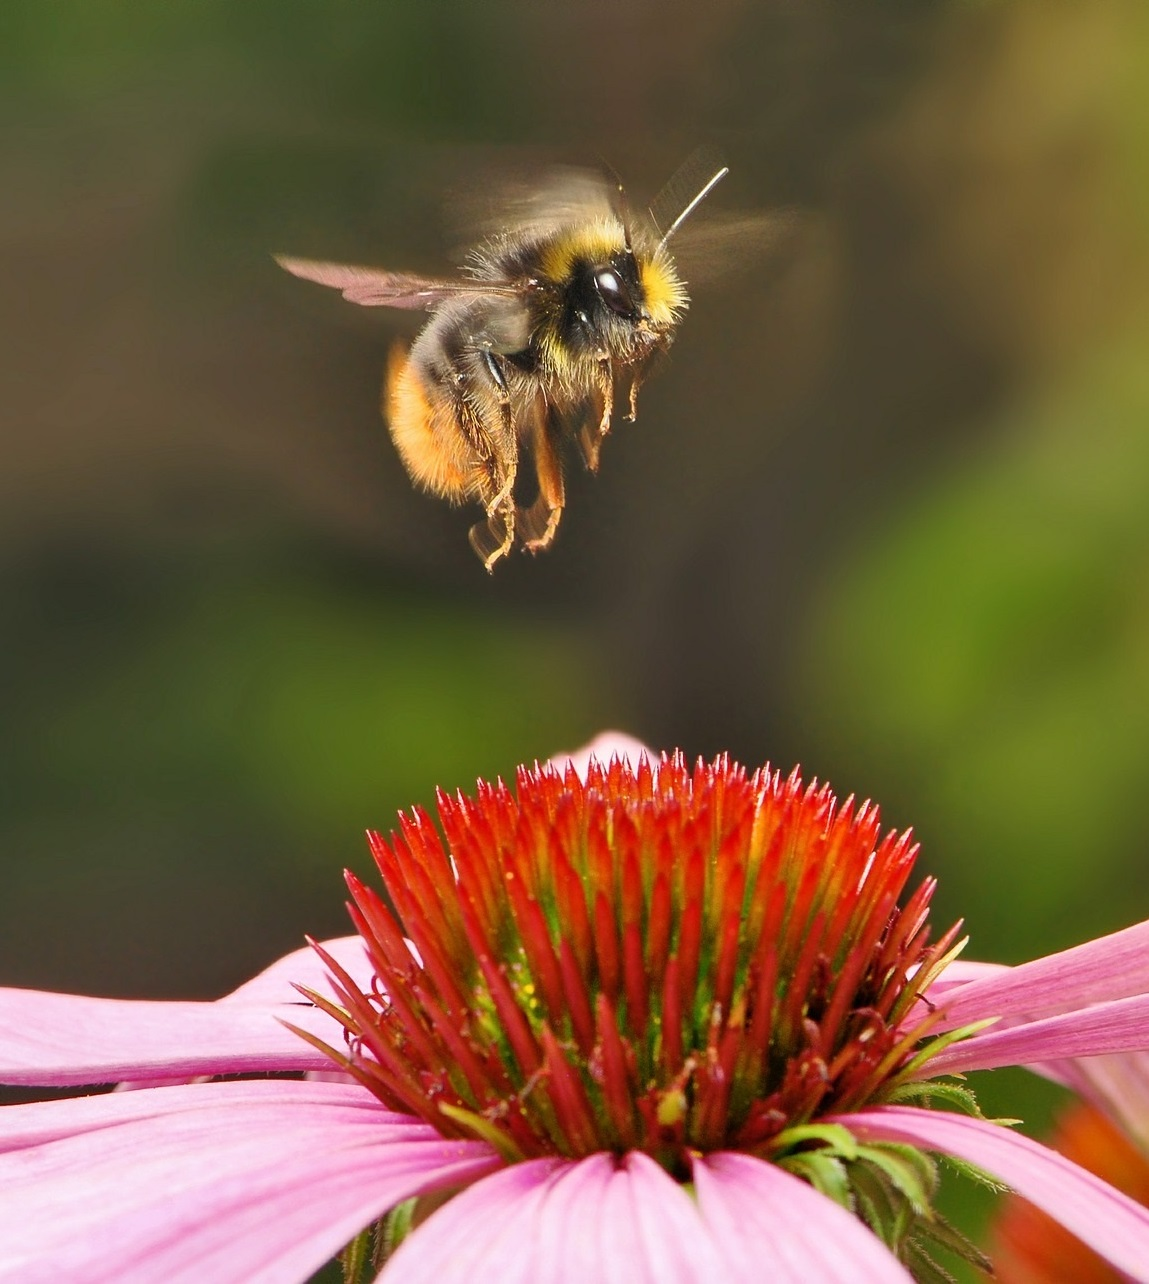 Attract Bees - Attract bumblebees - Bumblebee - Early Bumblebee